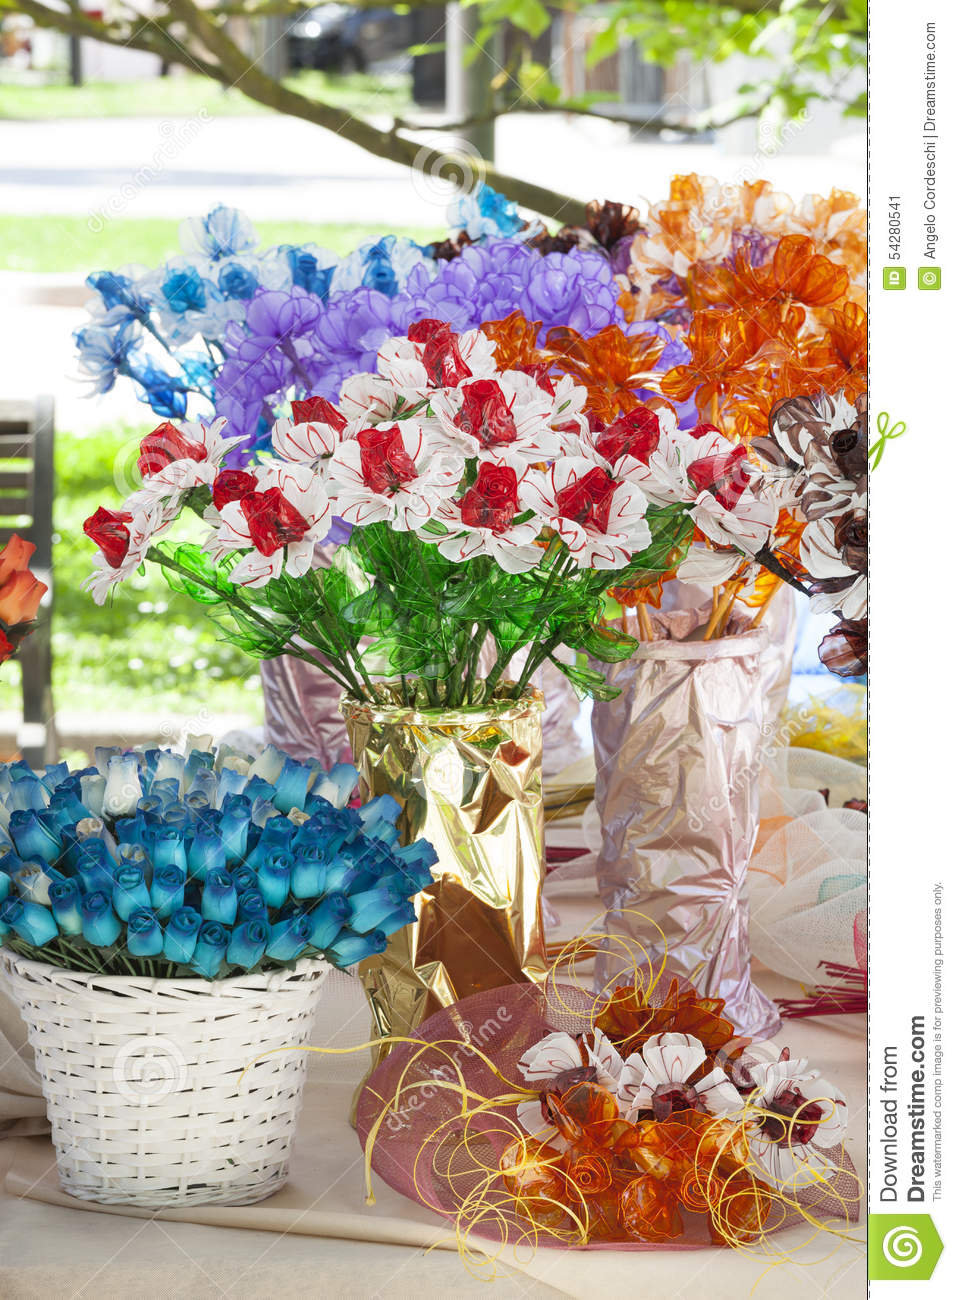 Items To Decorate Living Room: House Flower Decorations In Vases. Flowers Stock Photo